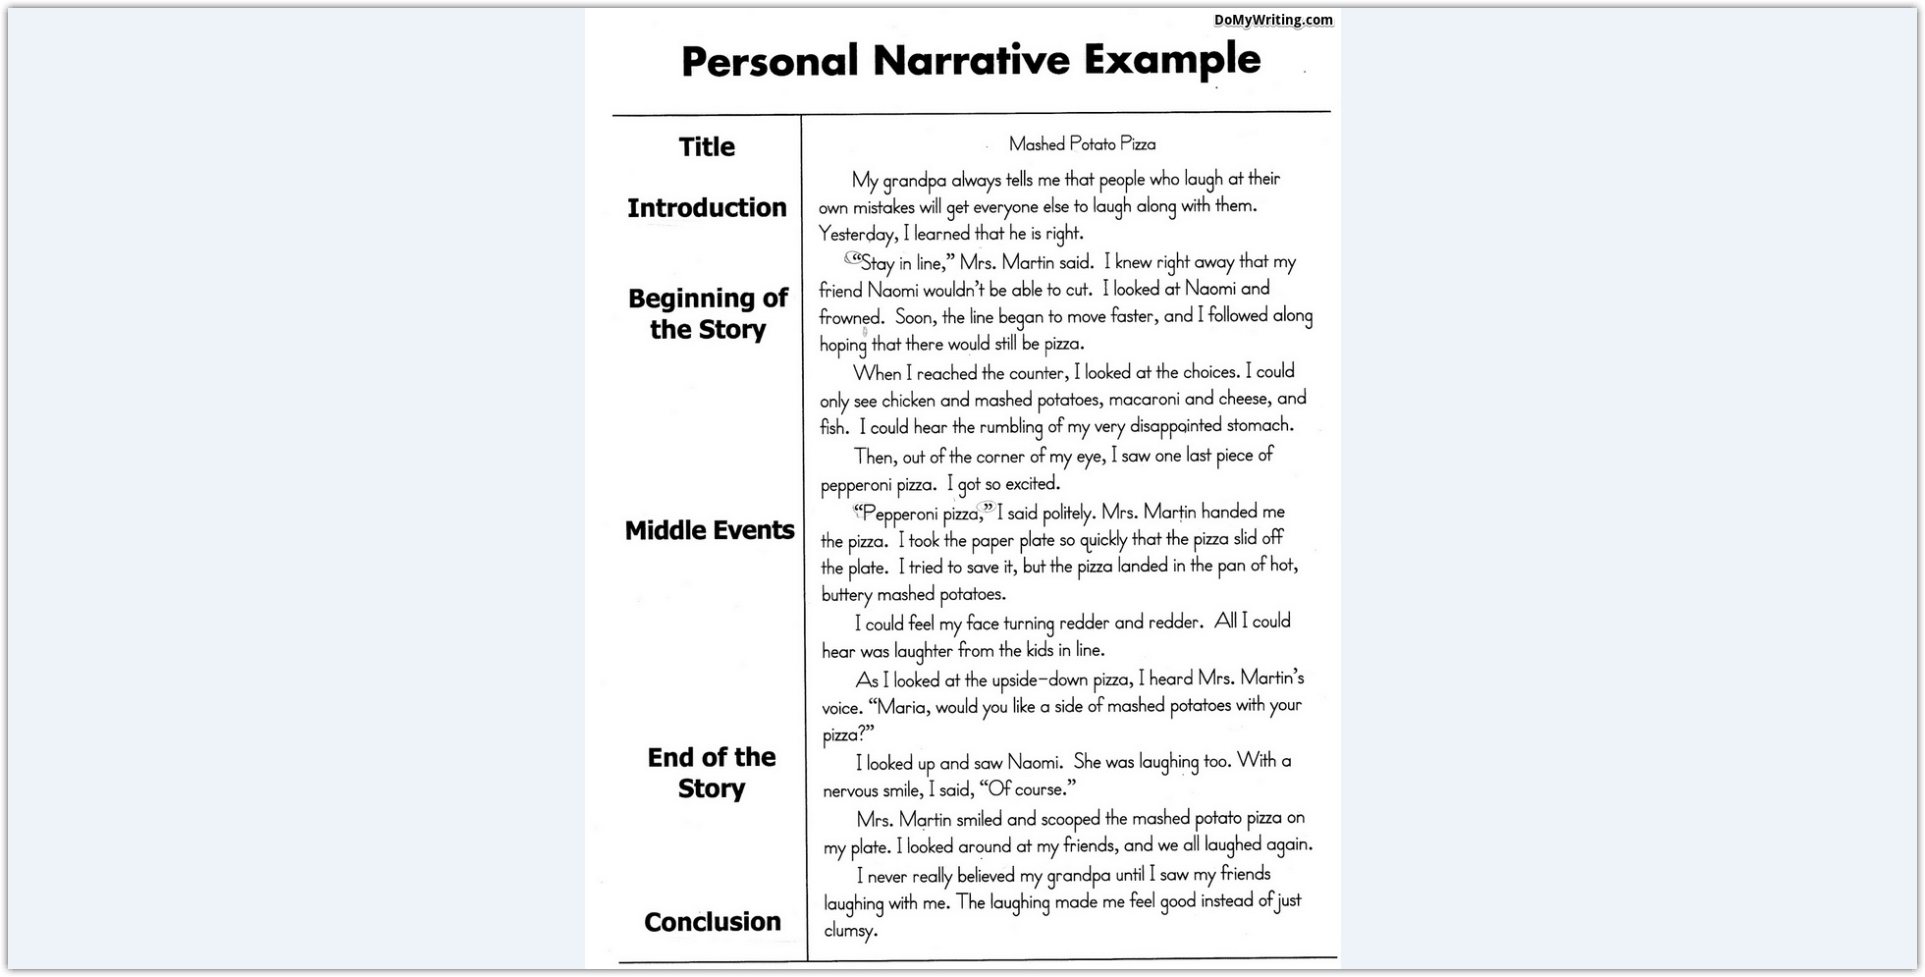 002 Narrative Essay Exceptional Format High School Graphic Organizer 4th Grade Pdf Full